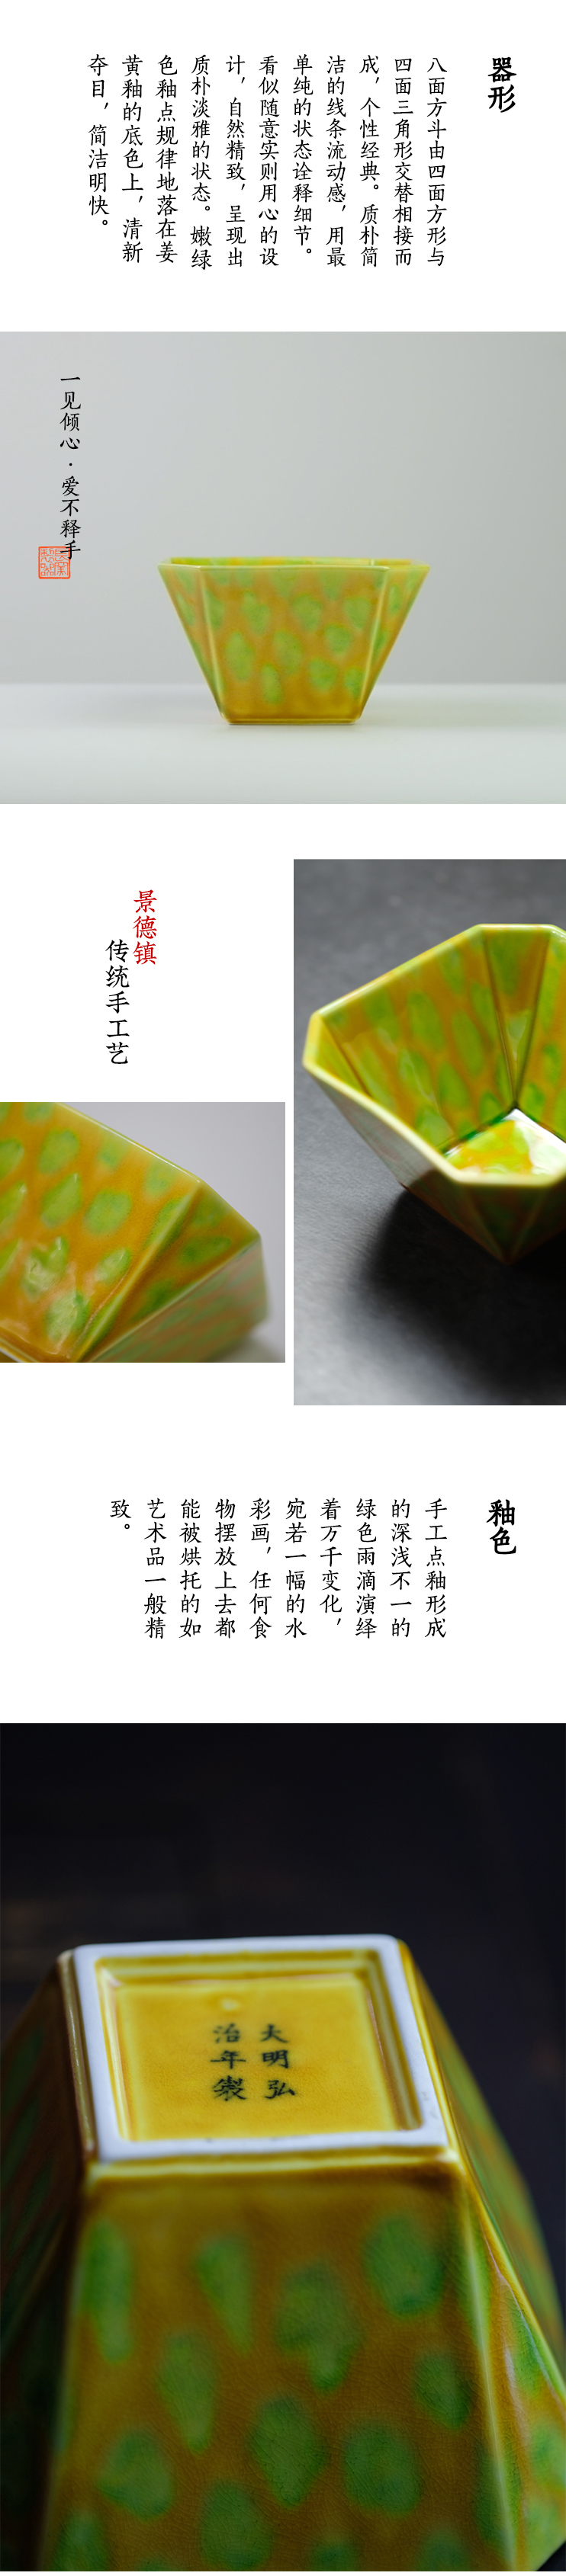 Offered home - cooked ju long up controller point you fight small bowl eight square square bowl of archaize of jingdezhen ceramics by hand